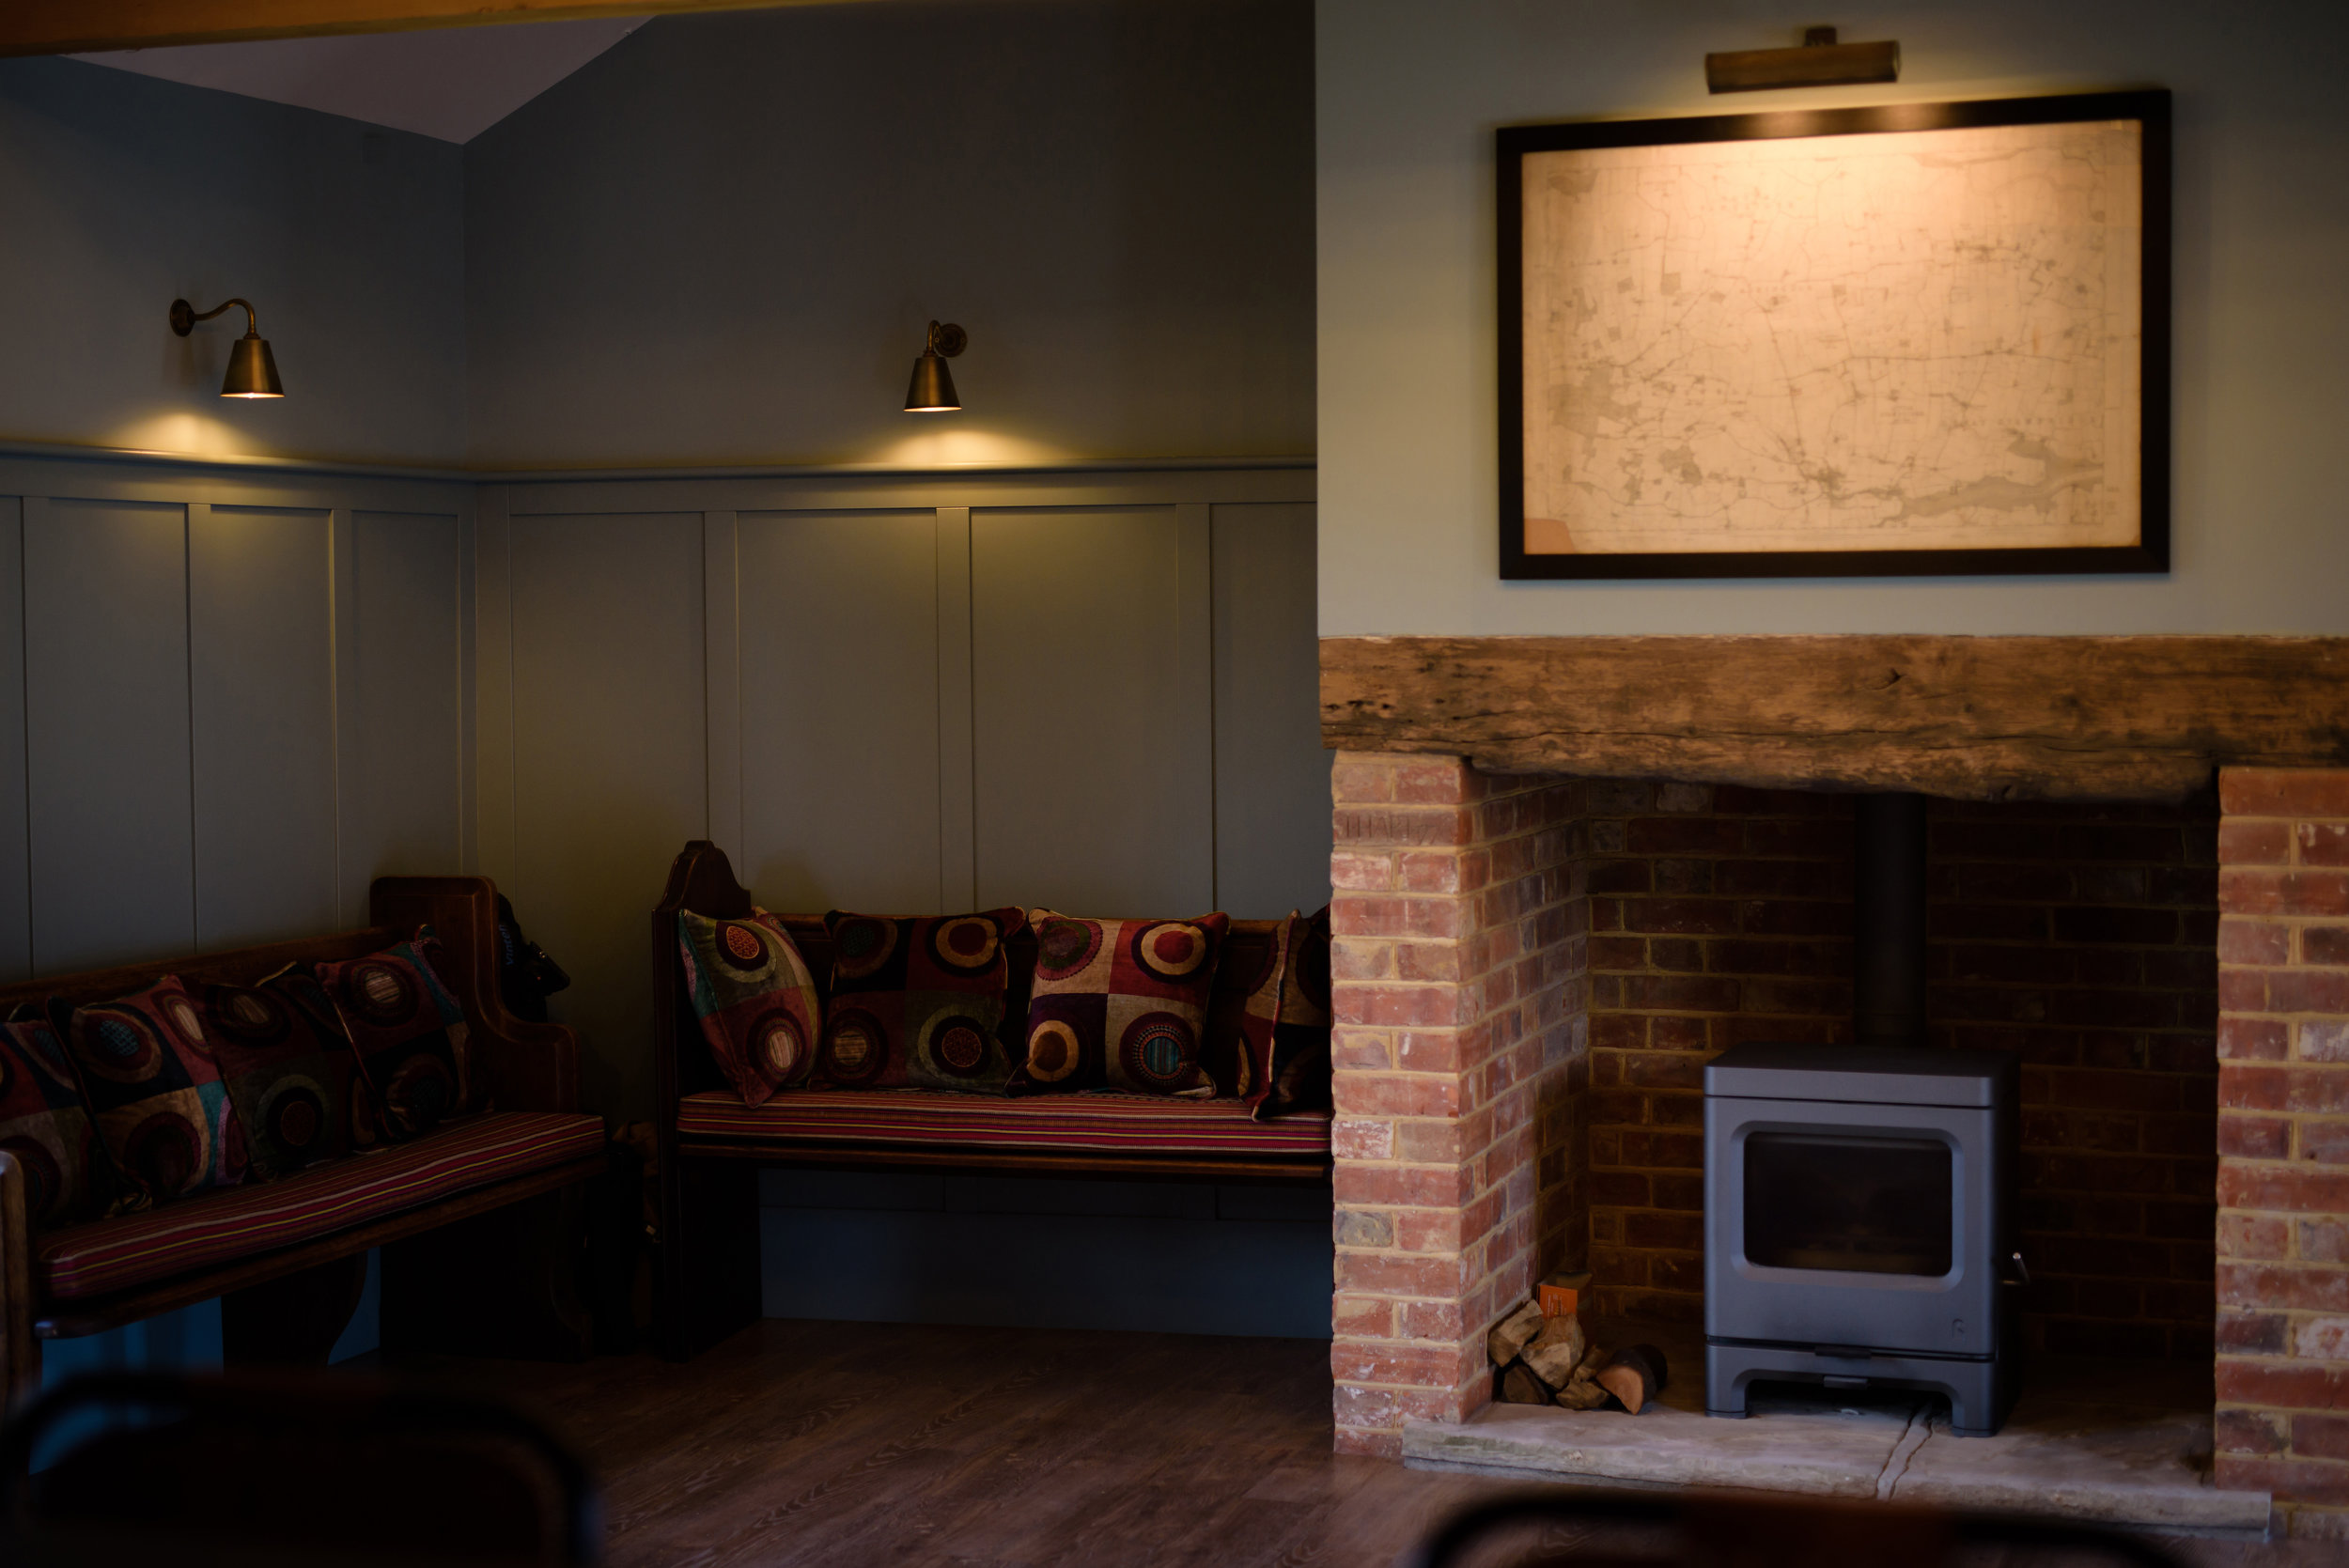 - The Snug Bar has a more chilled atmosphere with comfy chairs and a log burner for those cold winter nights. During the summer the double doors can be opened to provide access to the Pond Garden. The Snug is an area where everyone can relax and enjoy a few drinks.